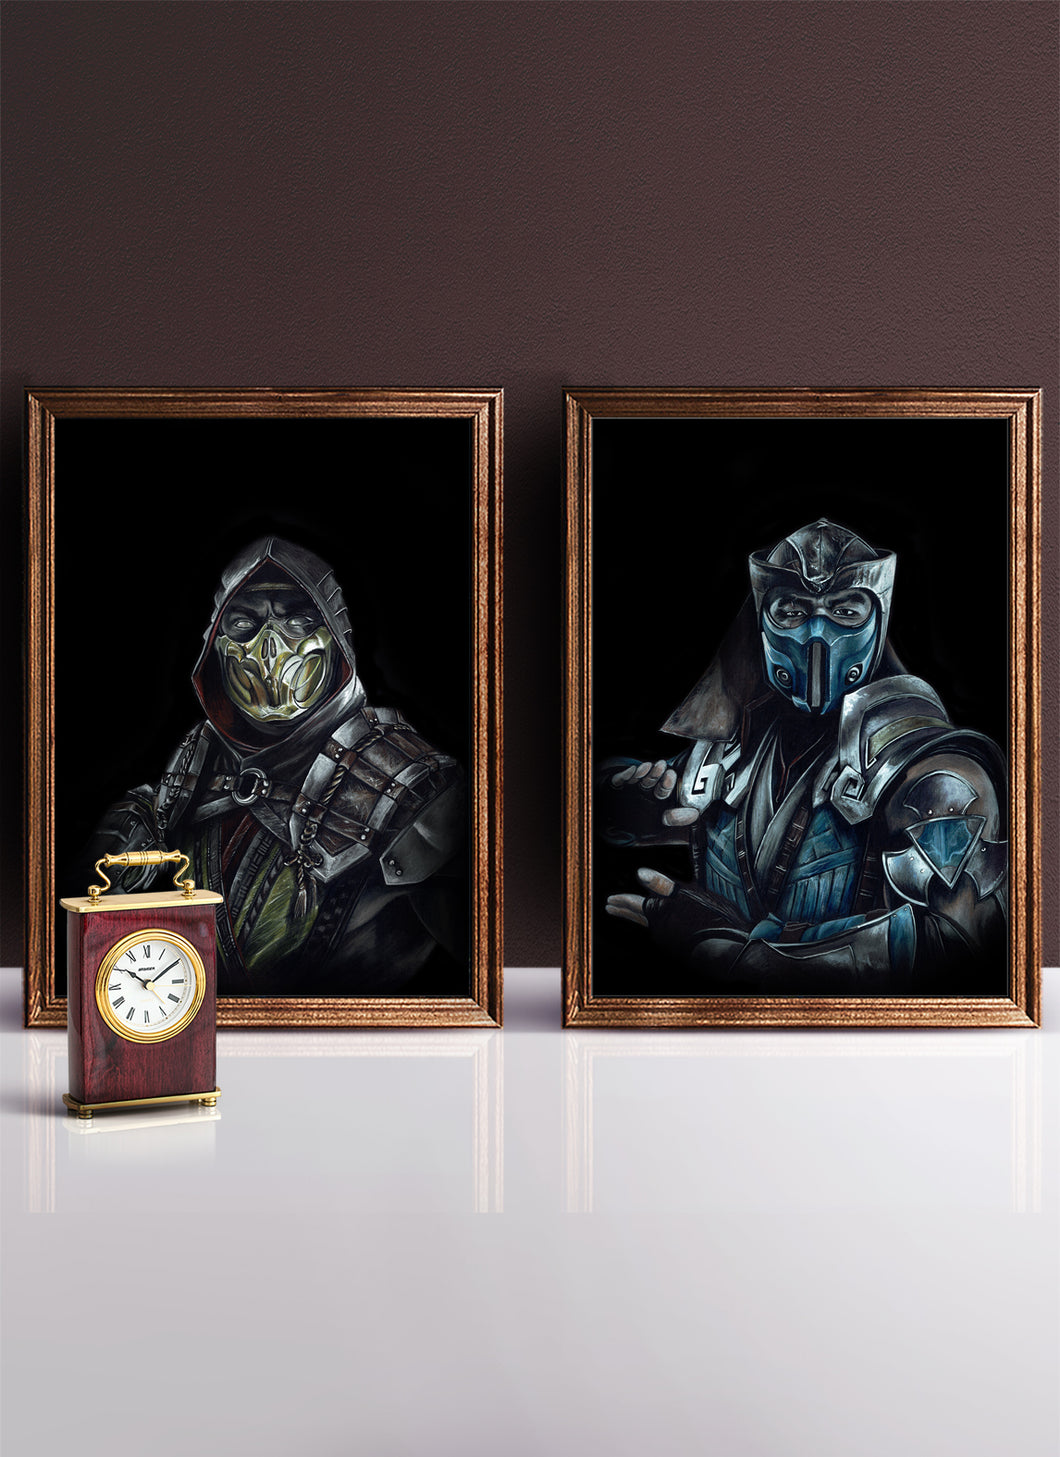 SCORPION VS SUBZERO | Set of 2